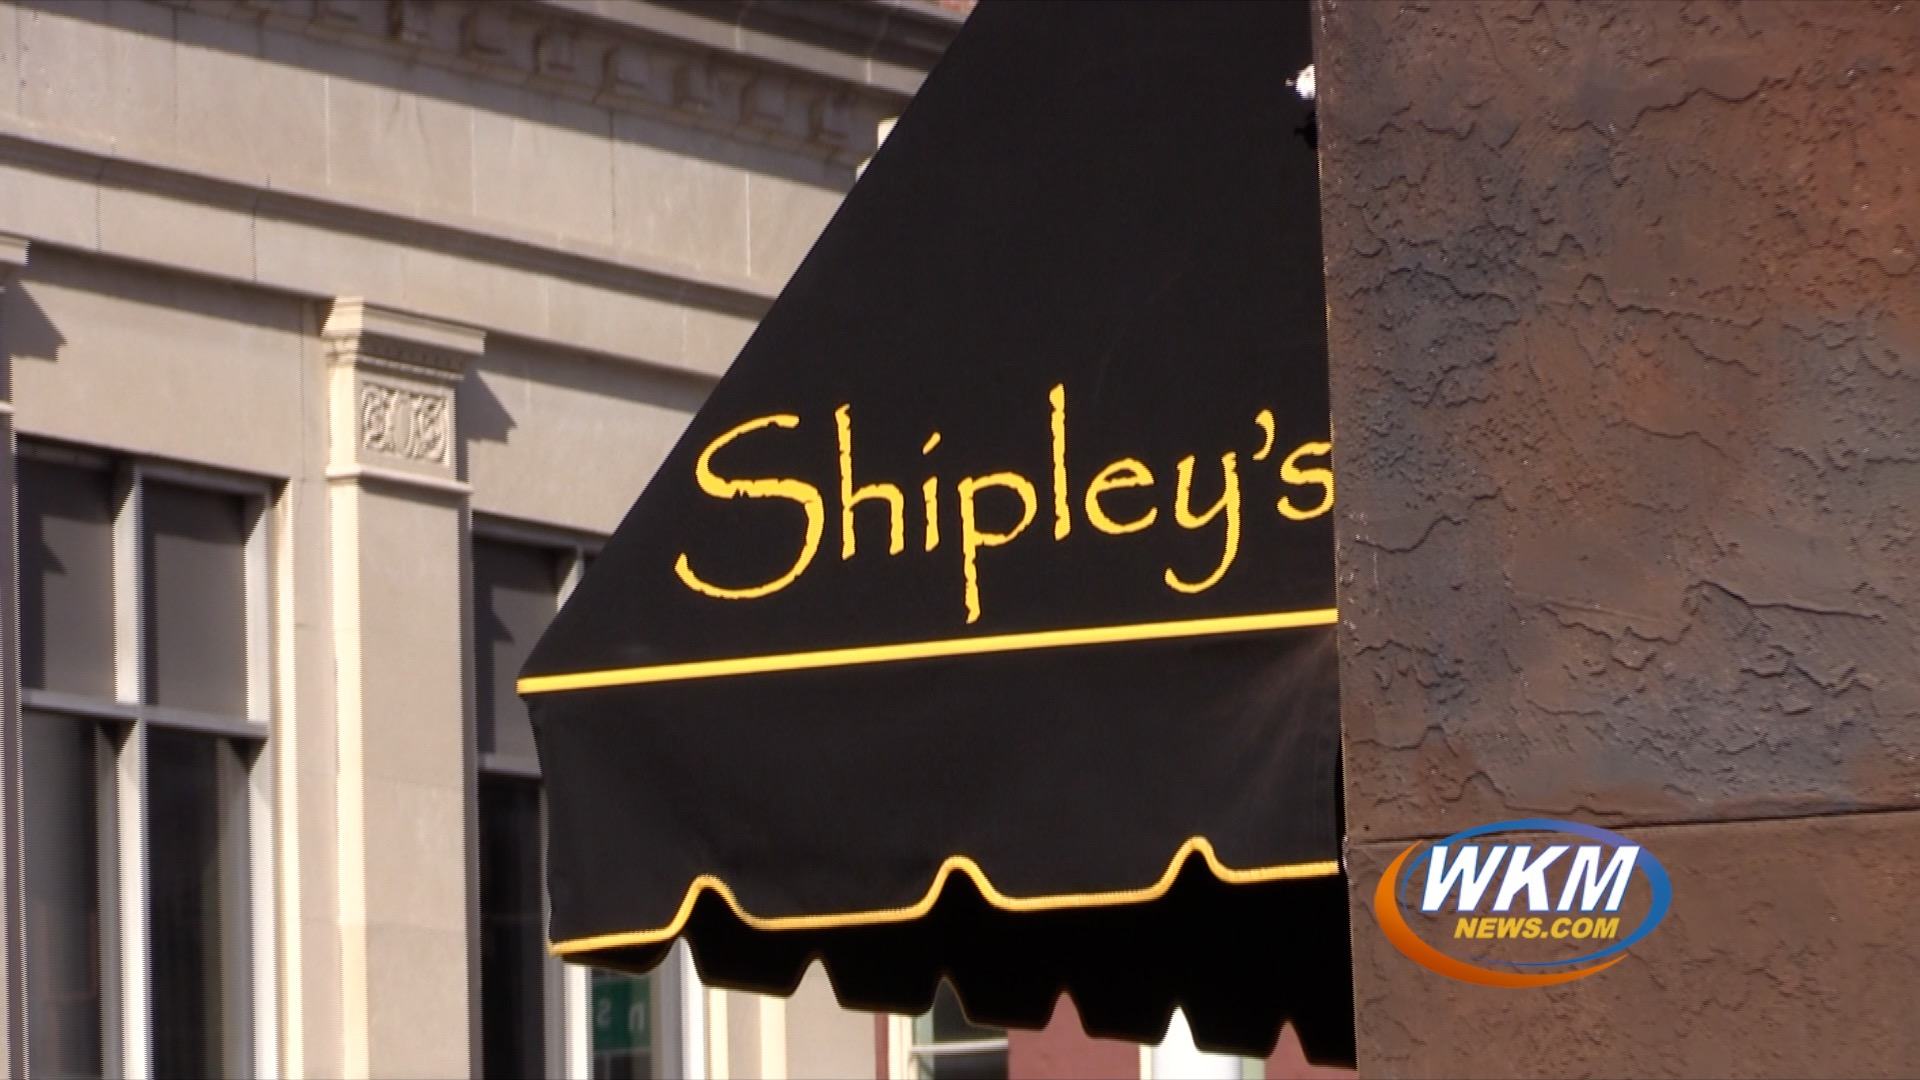 Shipley's Tavern Now Under New Ownership; Meet the Owners